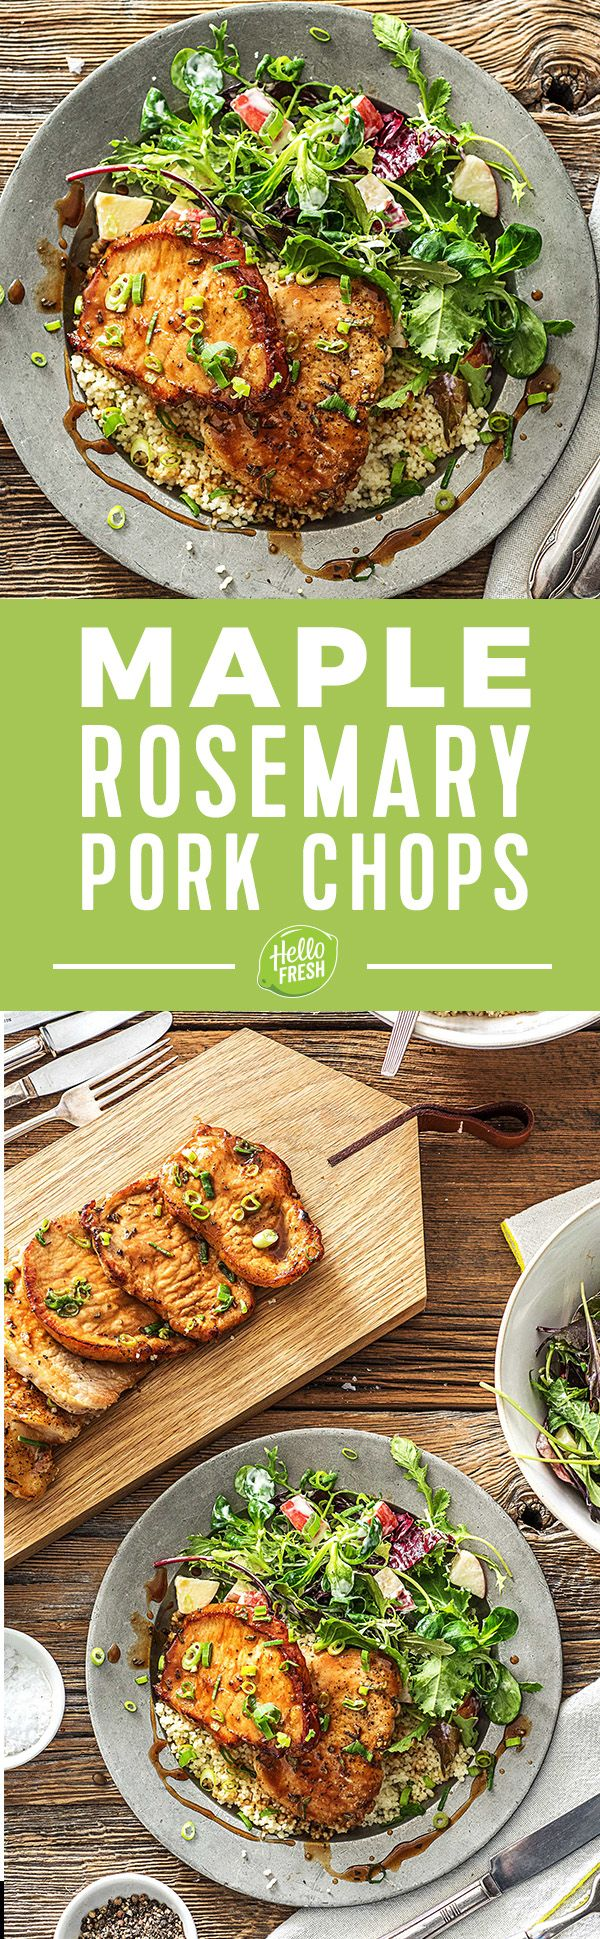 Maple and Rosemary-Glazed Pork Cutlets with Apple Salad in a Creamy Dressing | More easy and quick pork dinner recipes on hellofresh.com